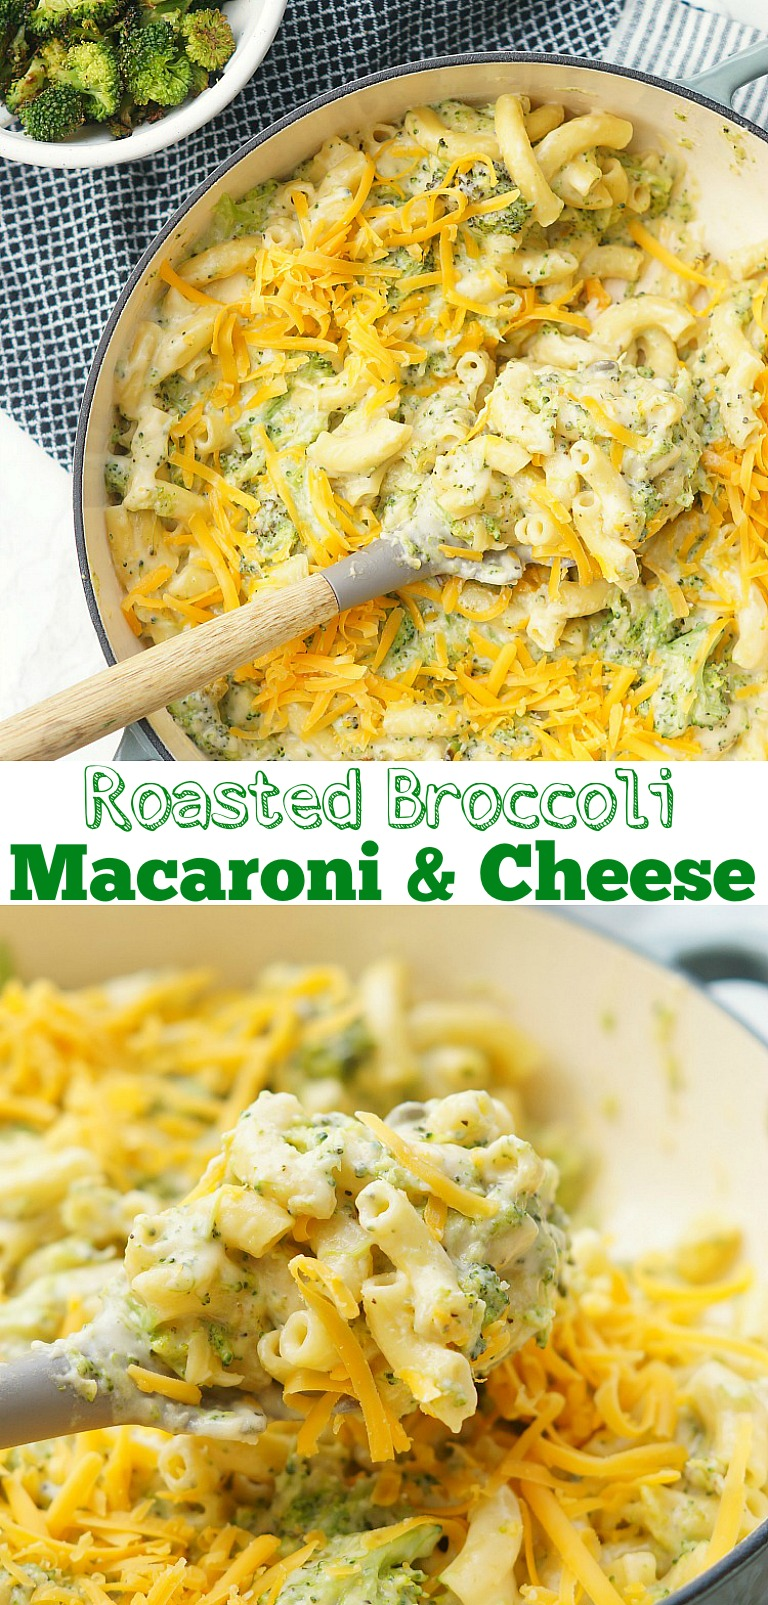 Roasted Broccoli with Macaroni and Cheese